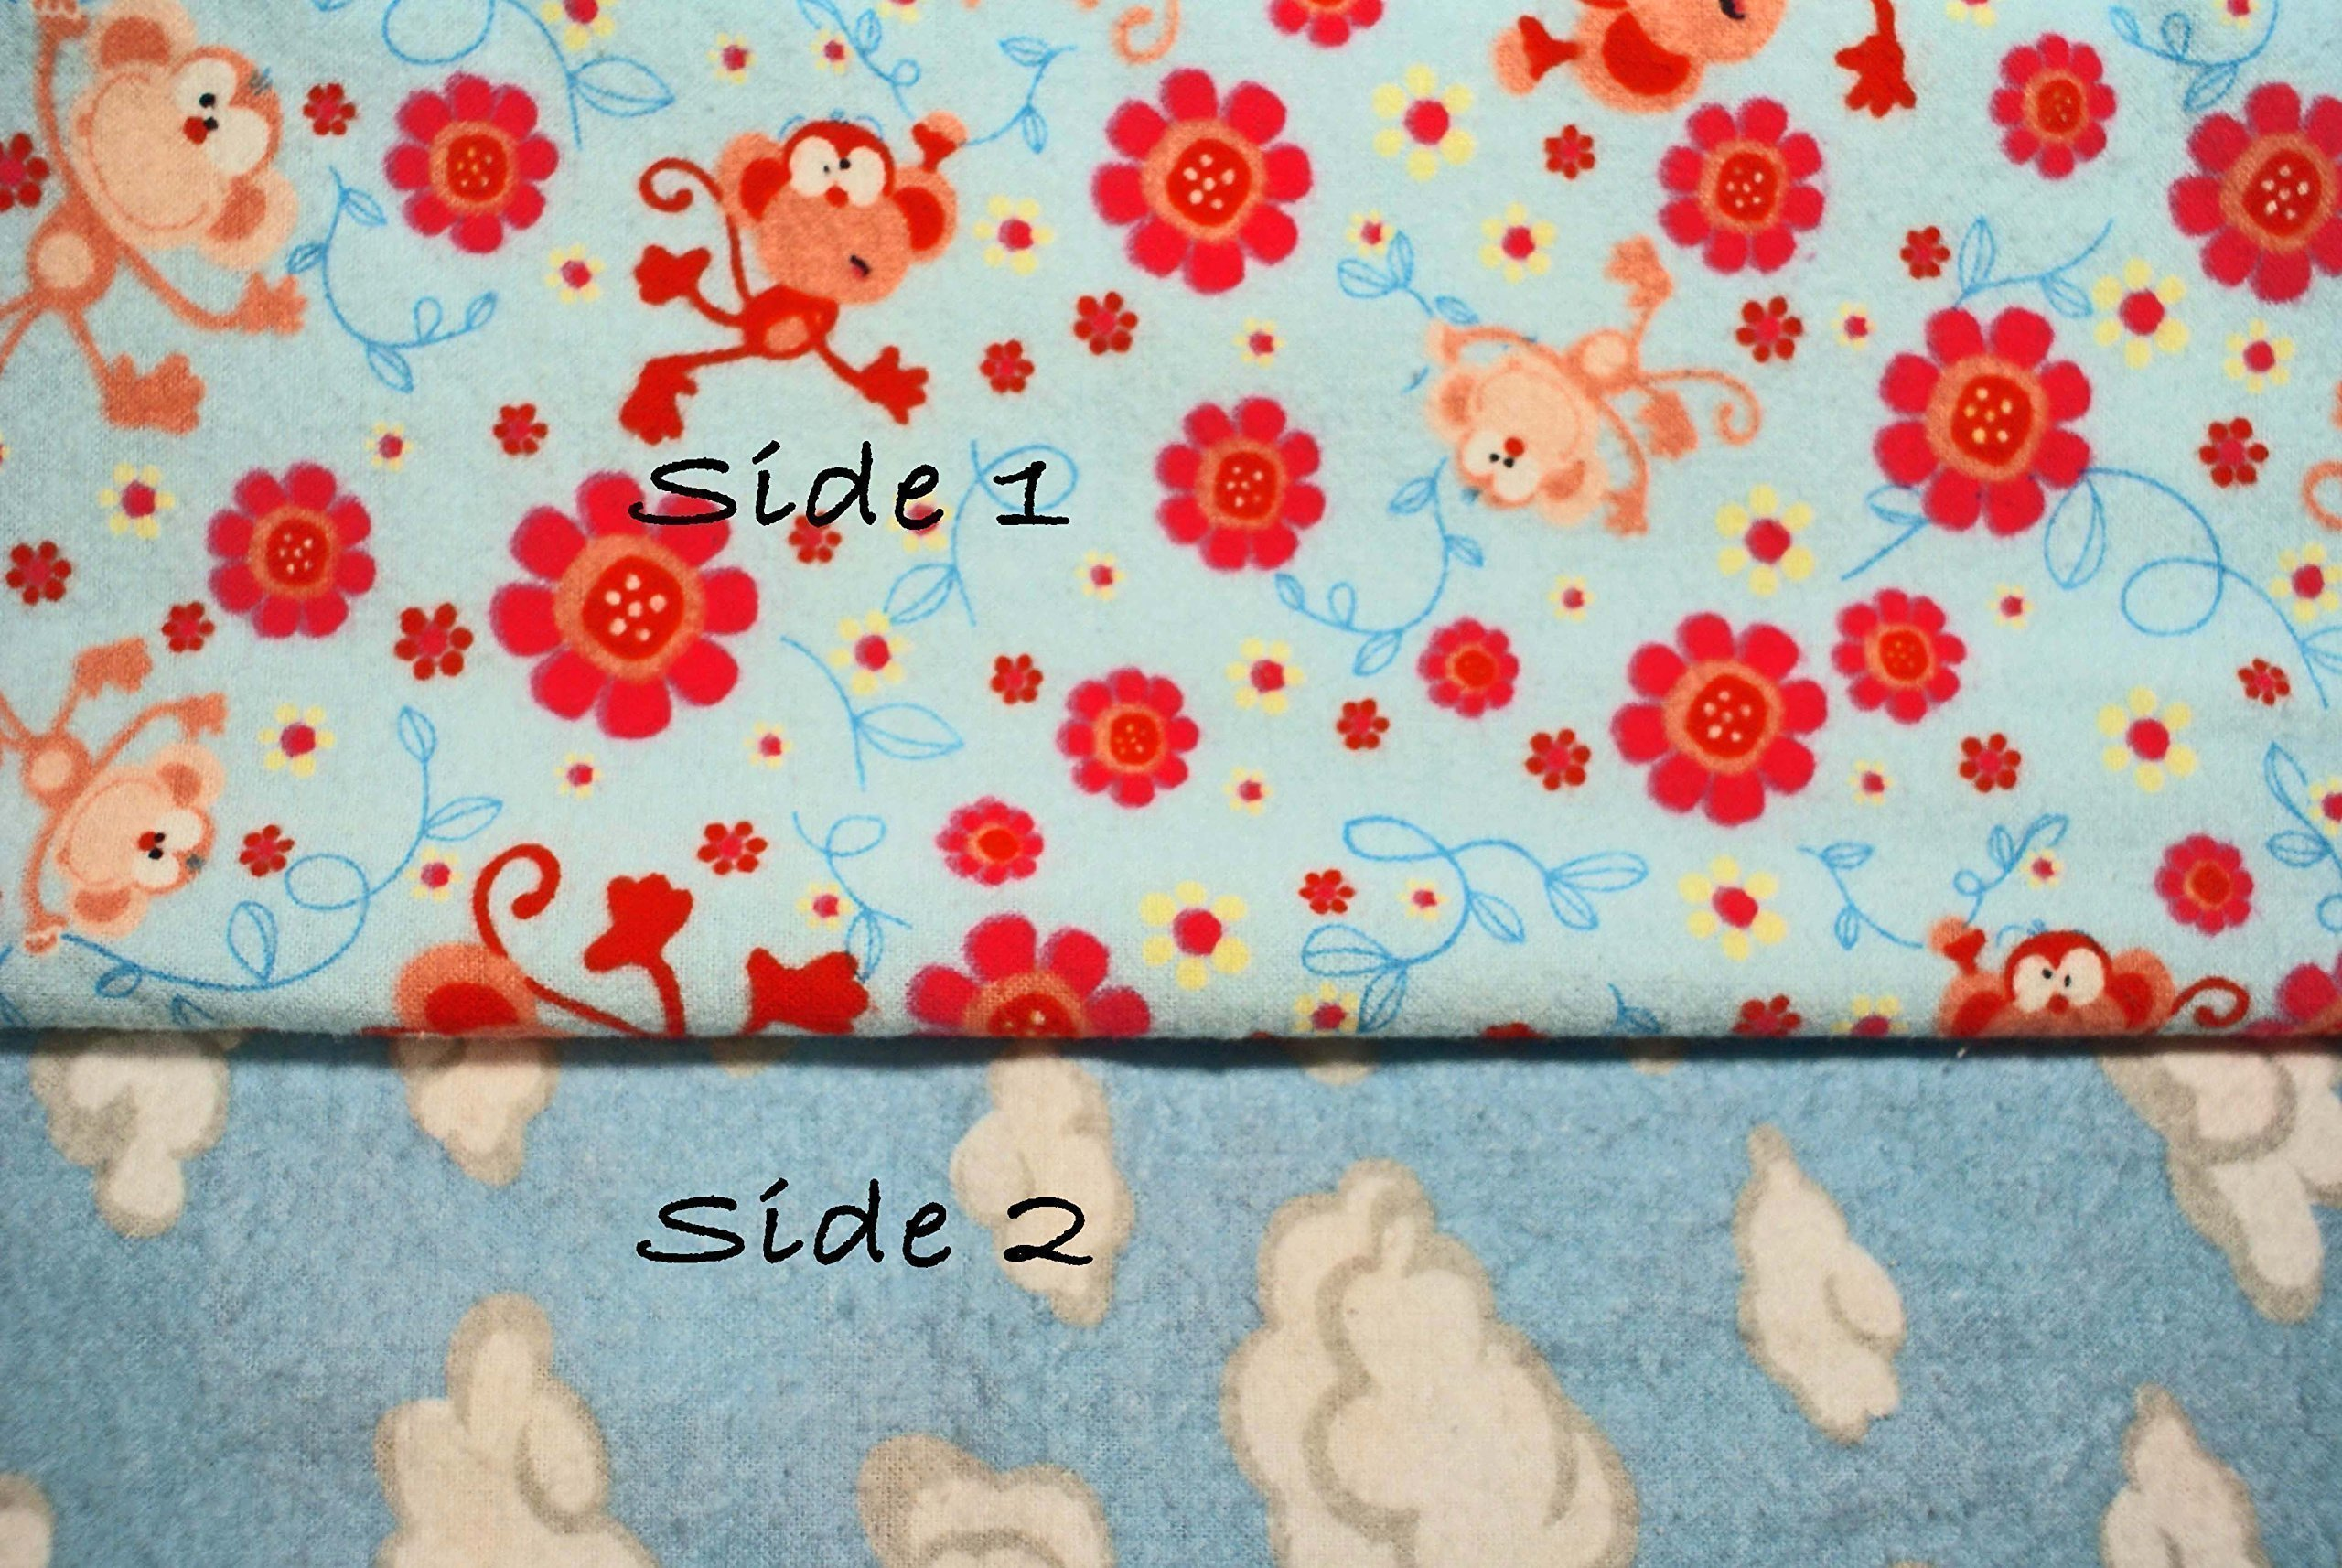 Pocket-2in1-Sheet Monkey and Flowers Pattern with Clouds Flannel 2 in 1 Patented No Slip Reversible Pack n Play Play Yard Fitted Sheet Cover or Day Care Mini Crib Mattress Sheet